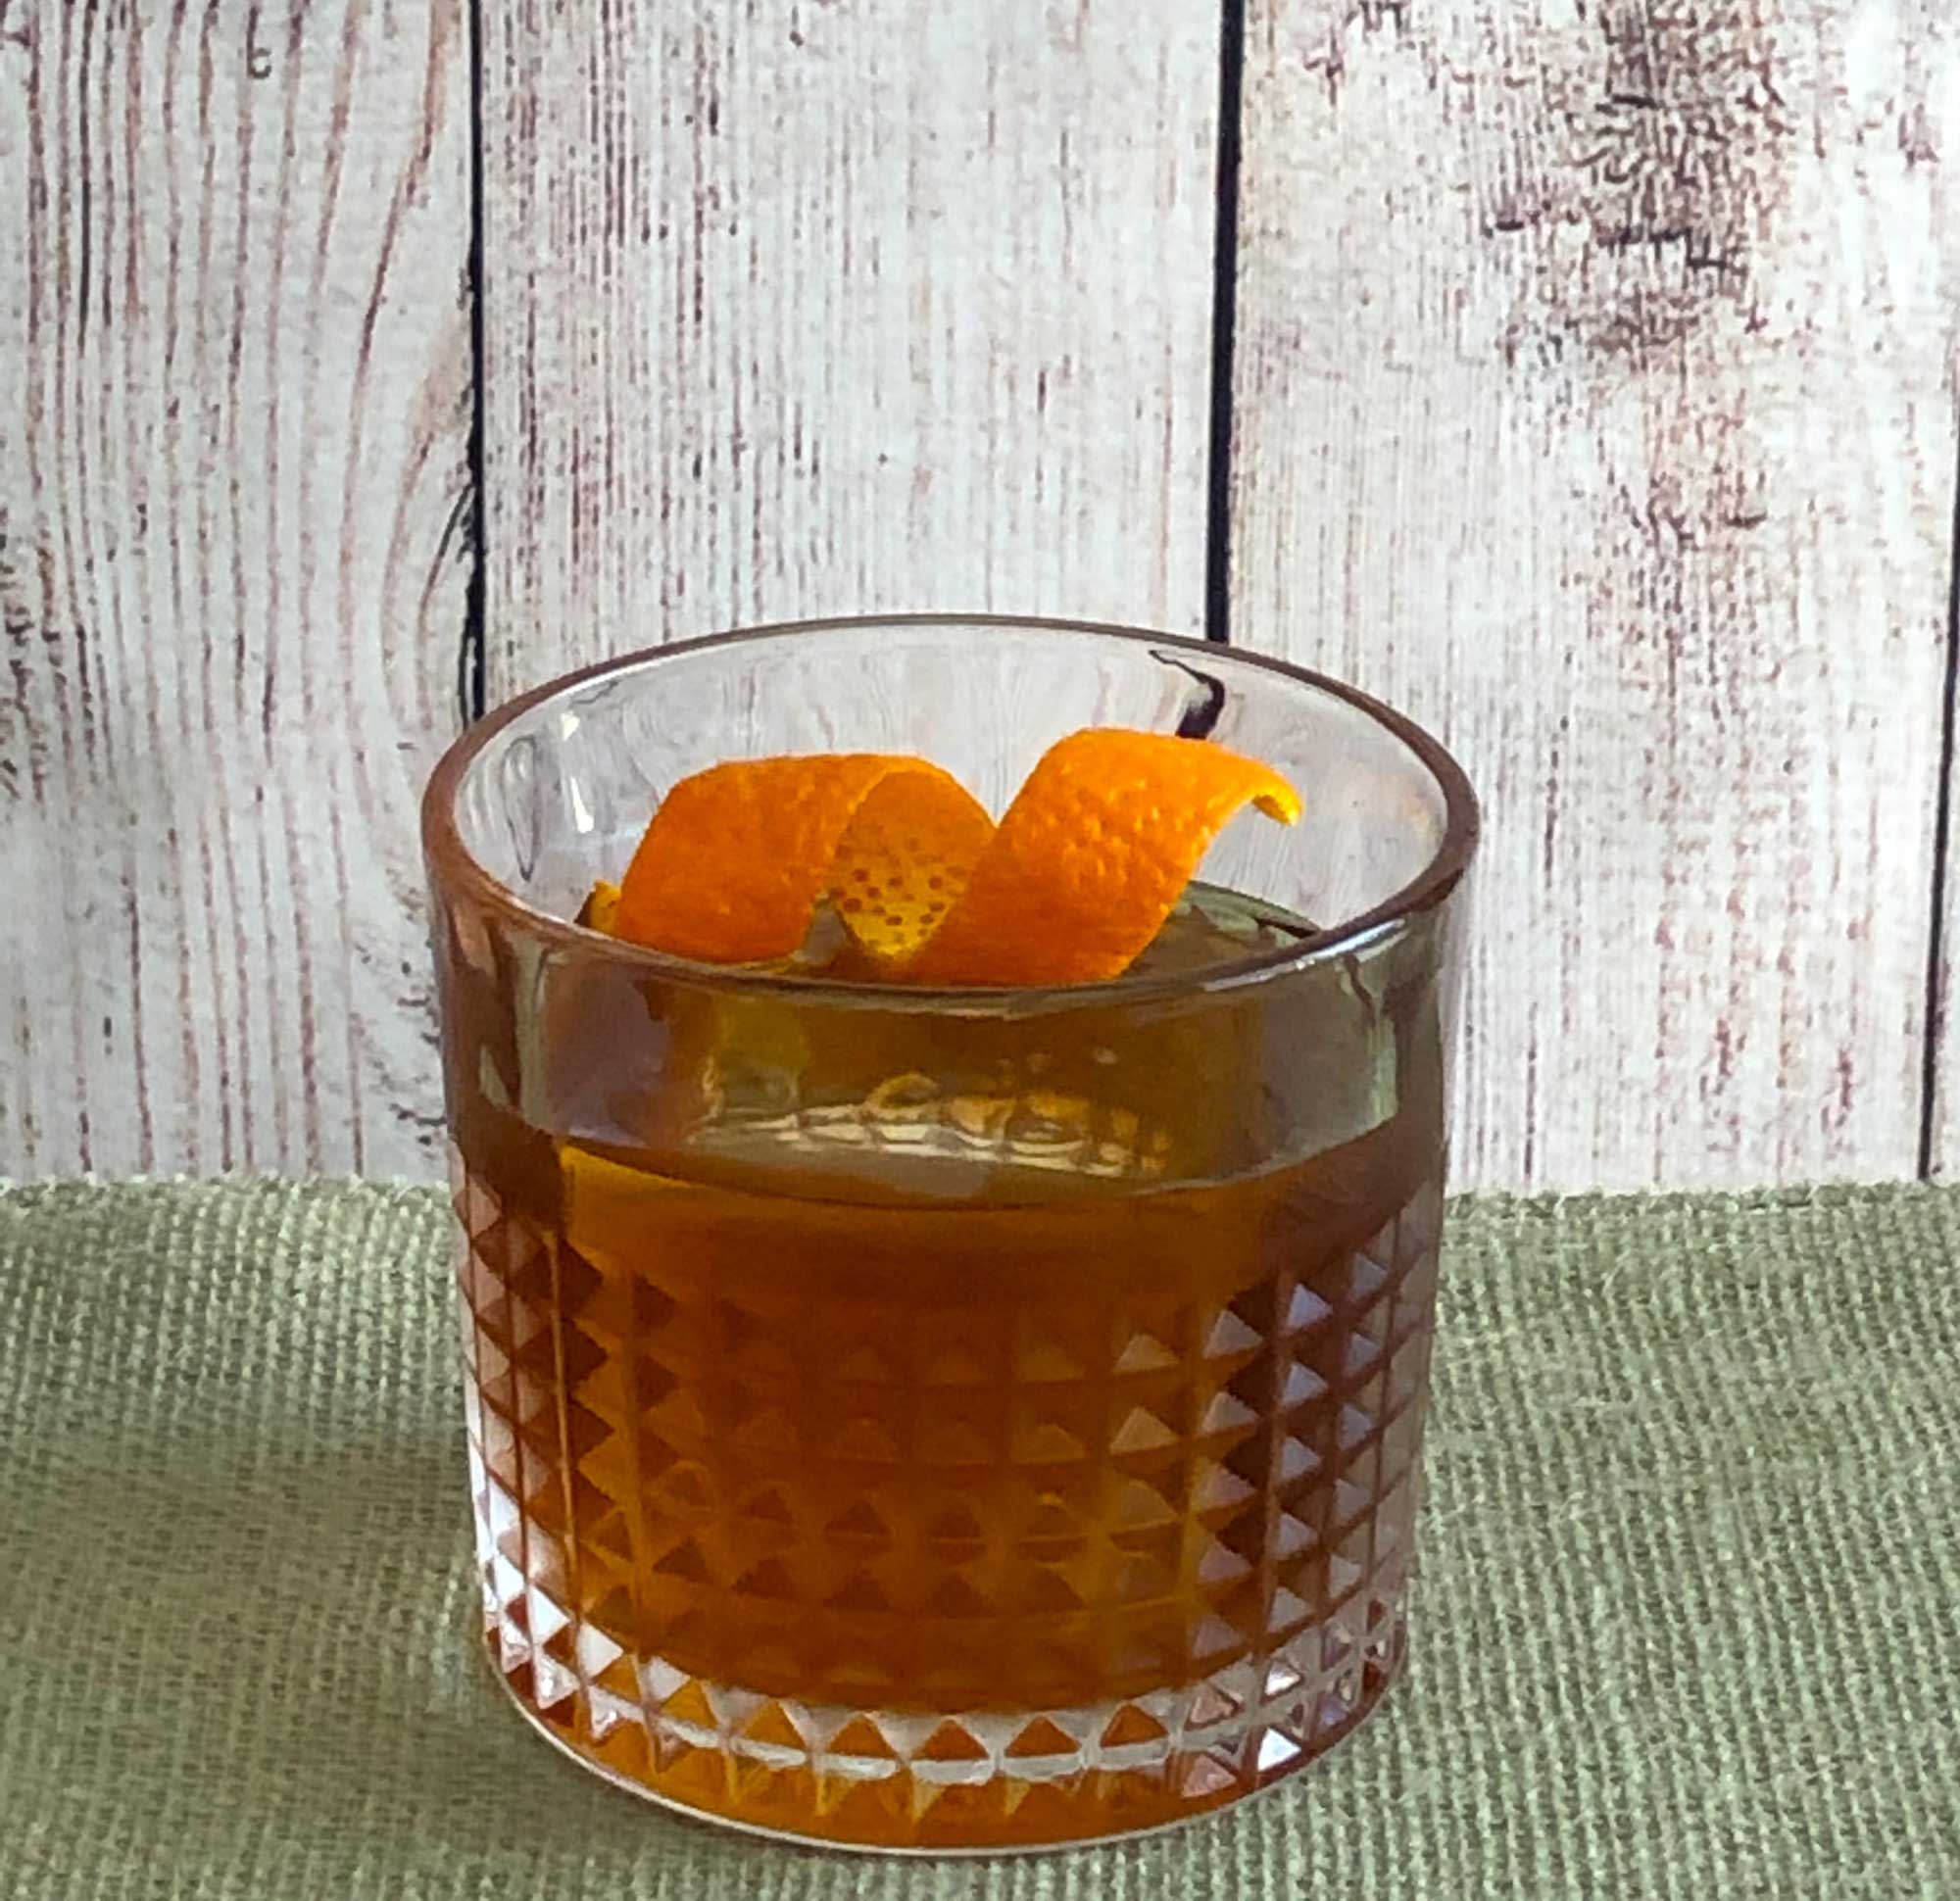 An example of the Negroni con Fumo, the mixed drink (cocktail) featuring Amaro Sfumato Rabarbaro, Hayman's Royal Dock Navy Strength Gin, and red vermouth; photo by Lee Edwards